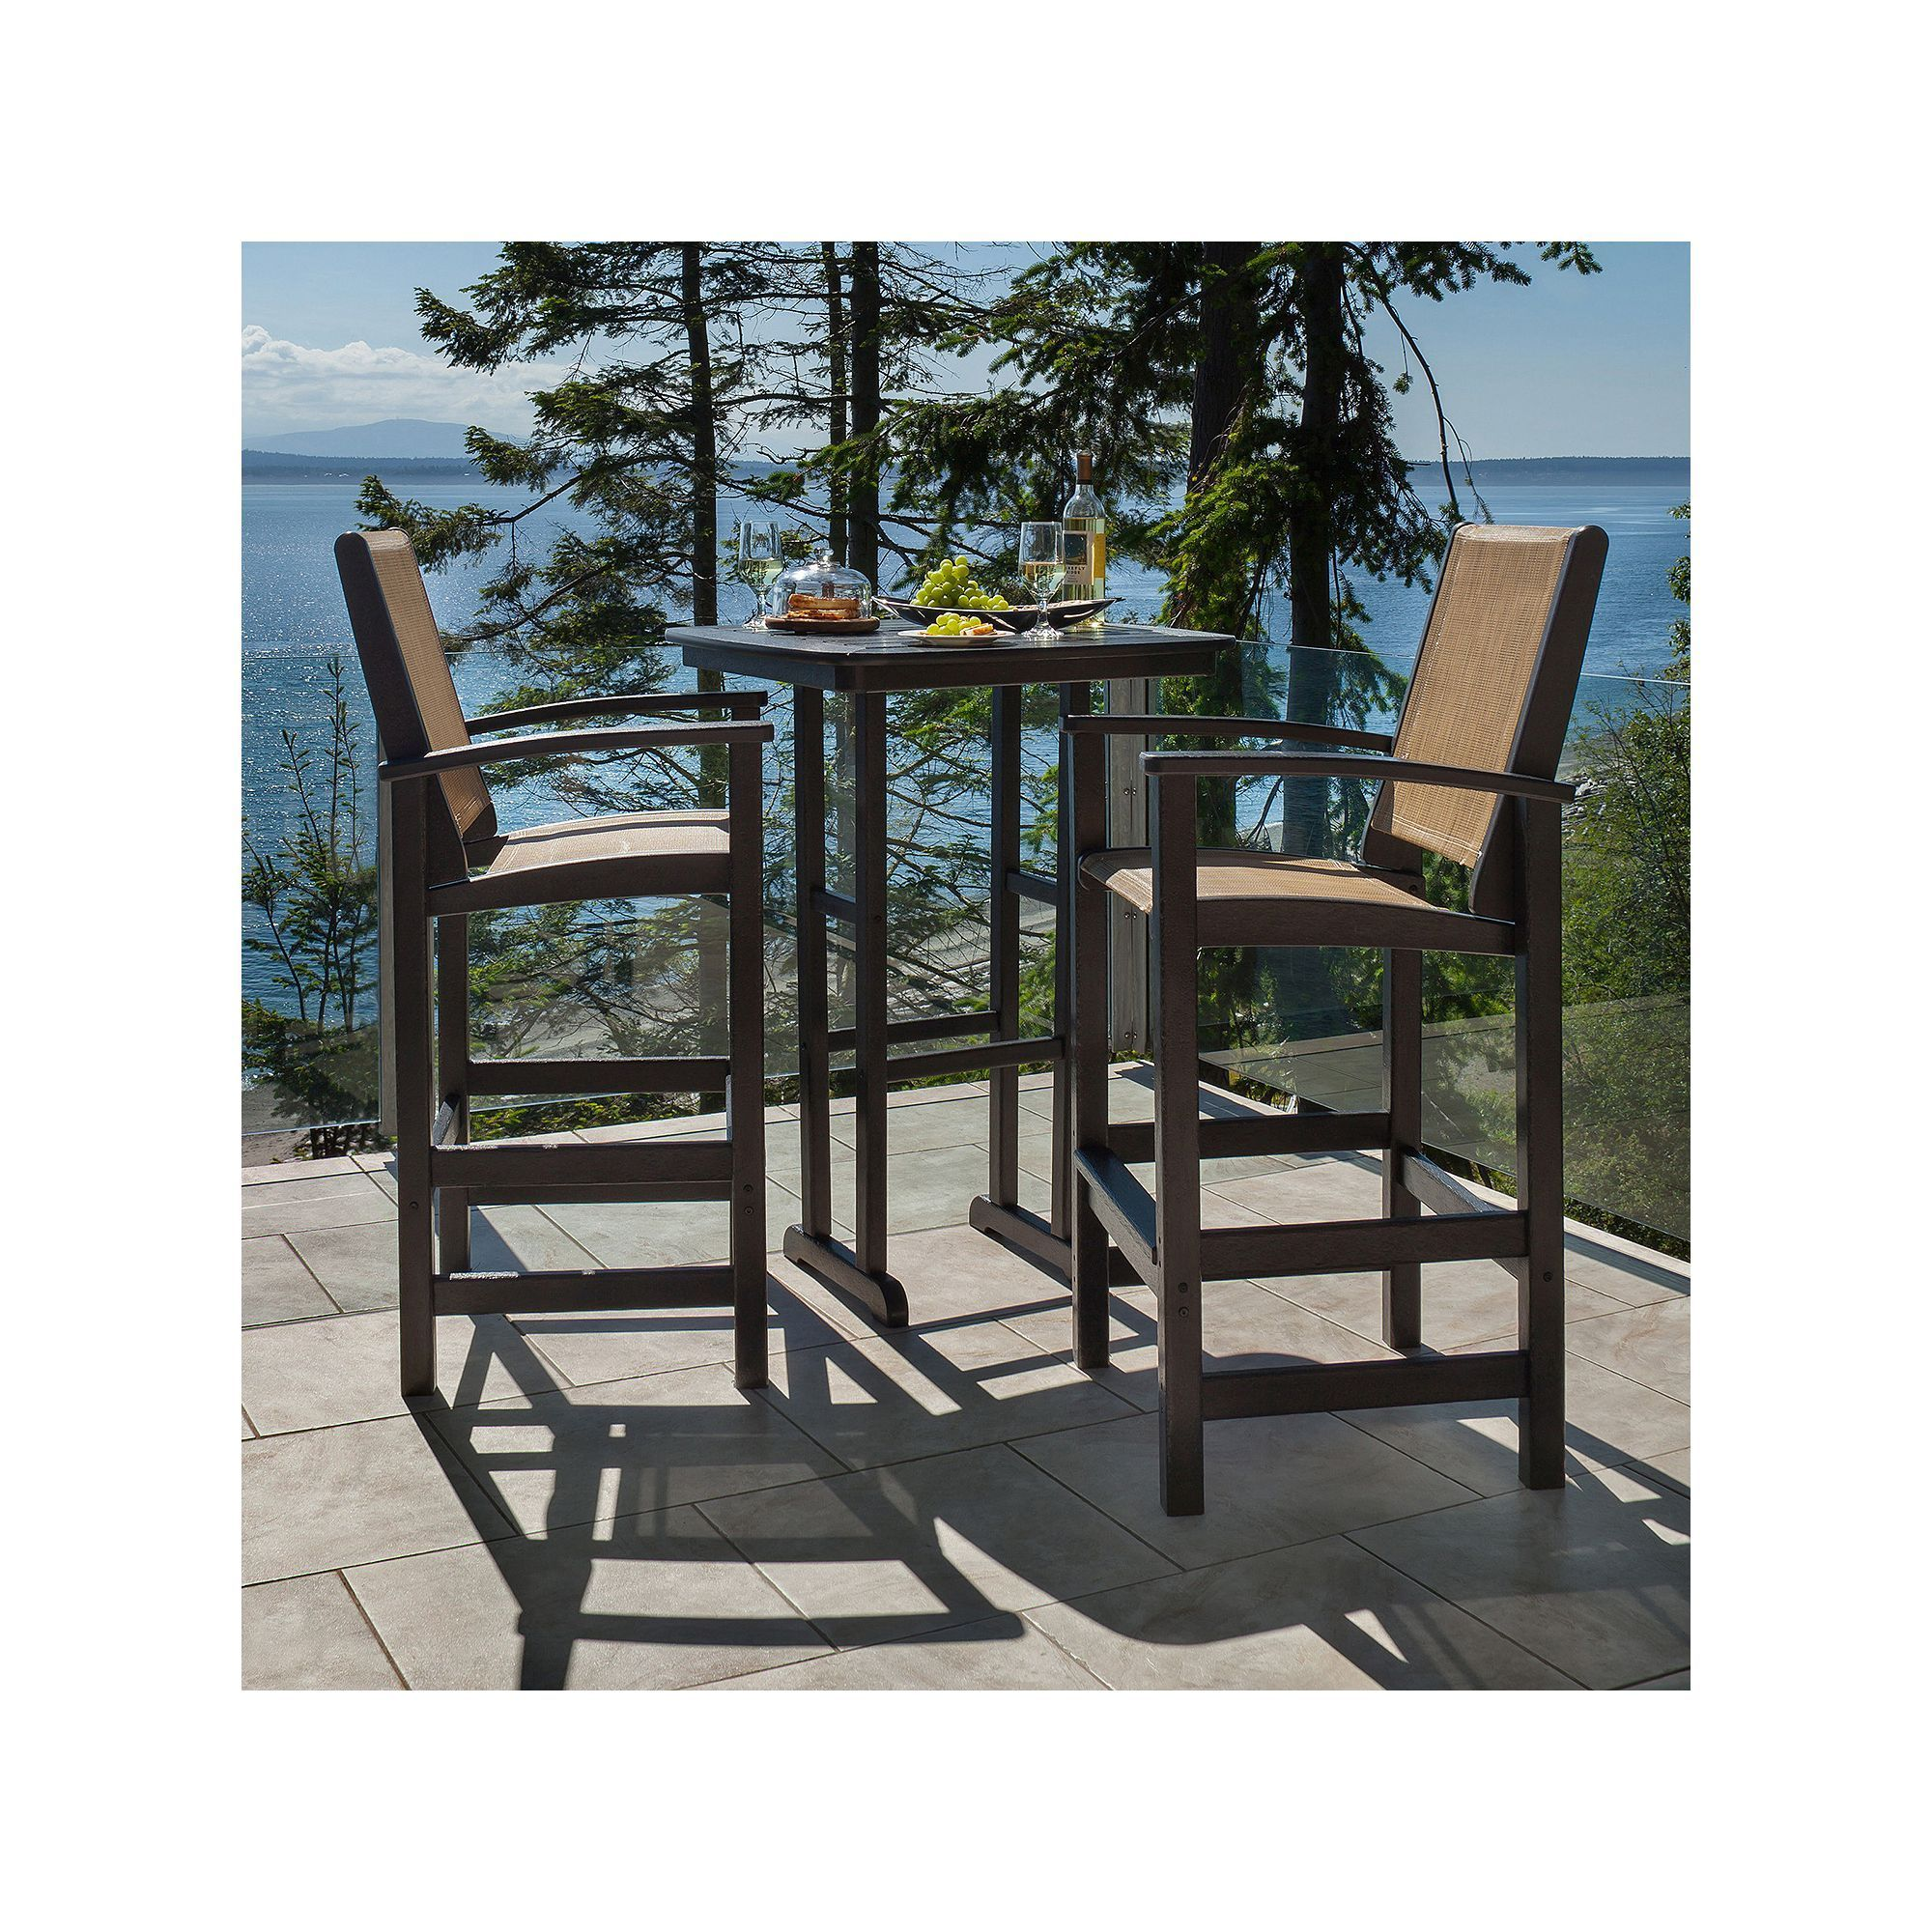 Polywood® 3-piece Coastal Outdoor Bar Chair u0026 Table Set Multicolor Durable  sc 1 st  Pinterest & Polywood® 3-piece Coastal Outdoor Bar Chair u0026 Table Set Multicolor ...